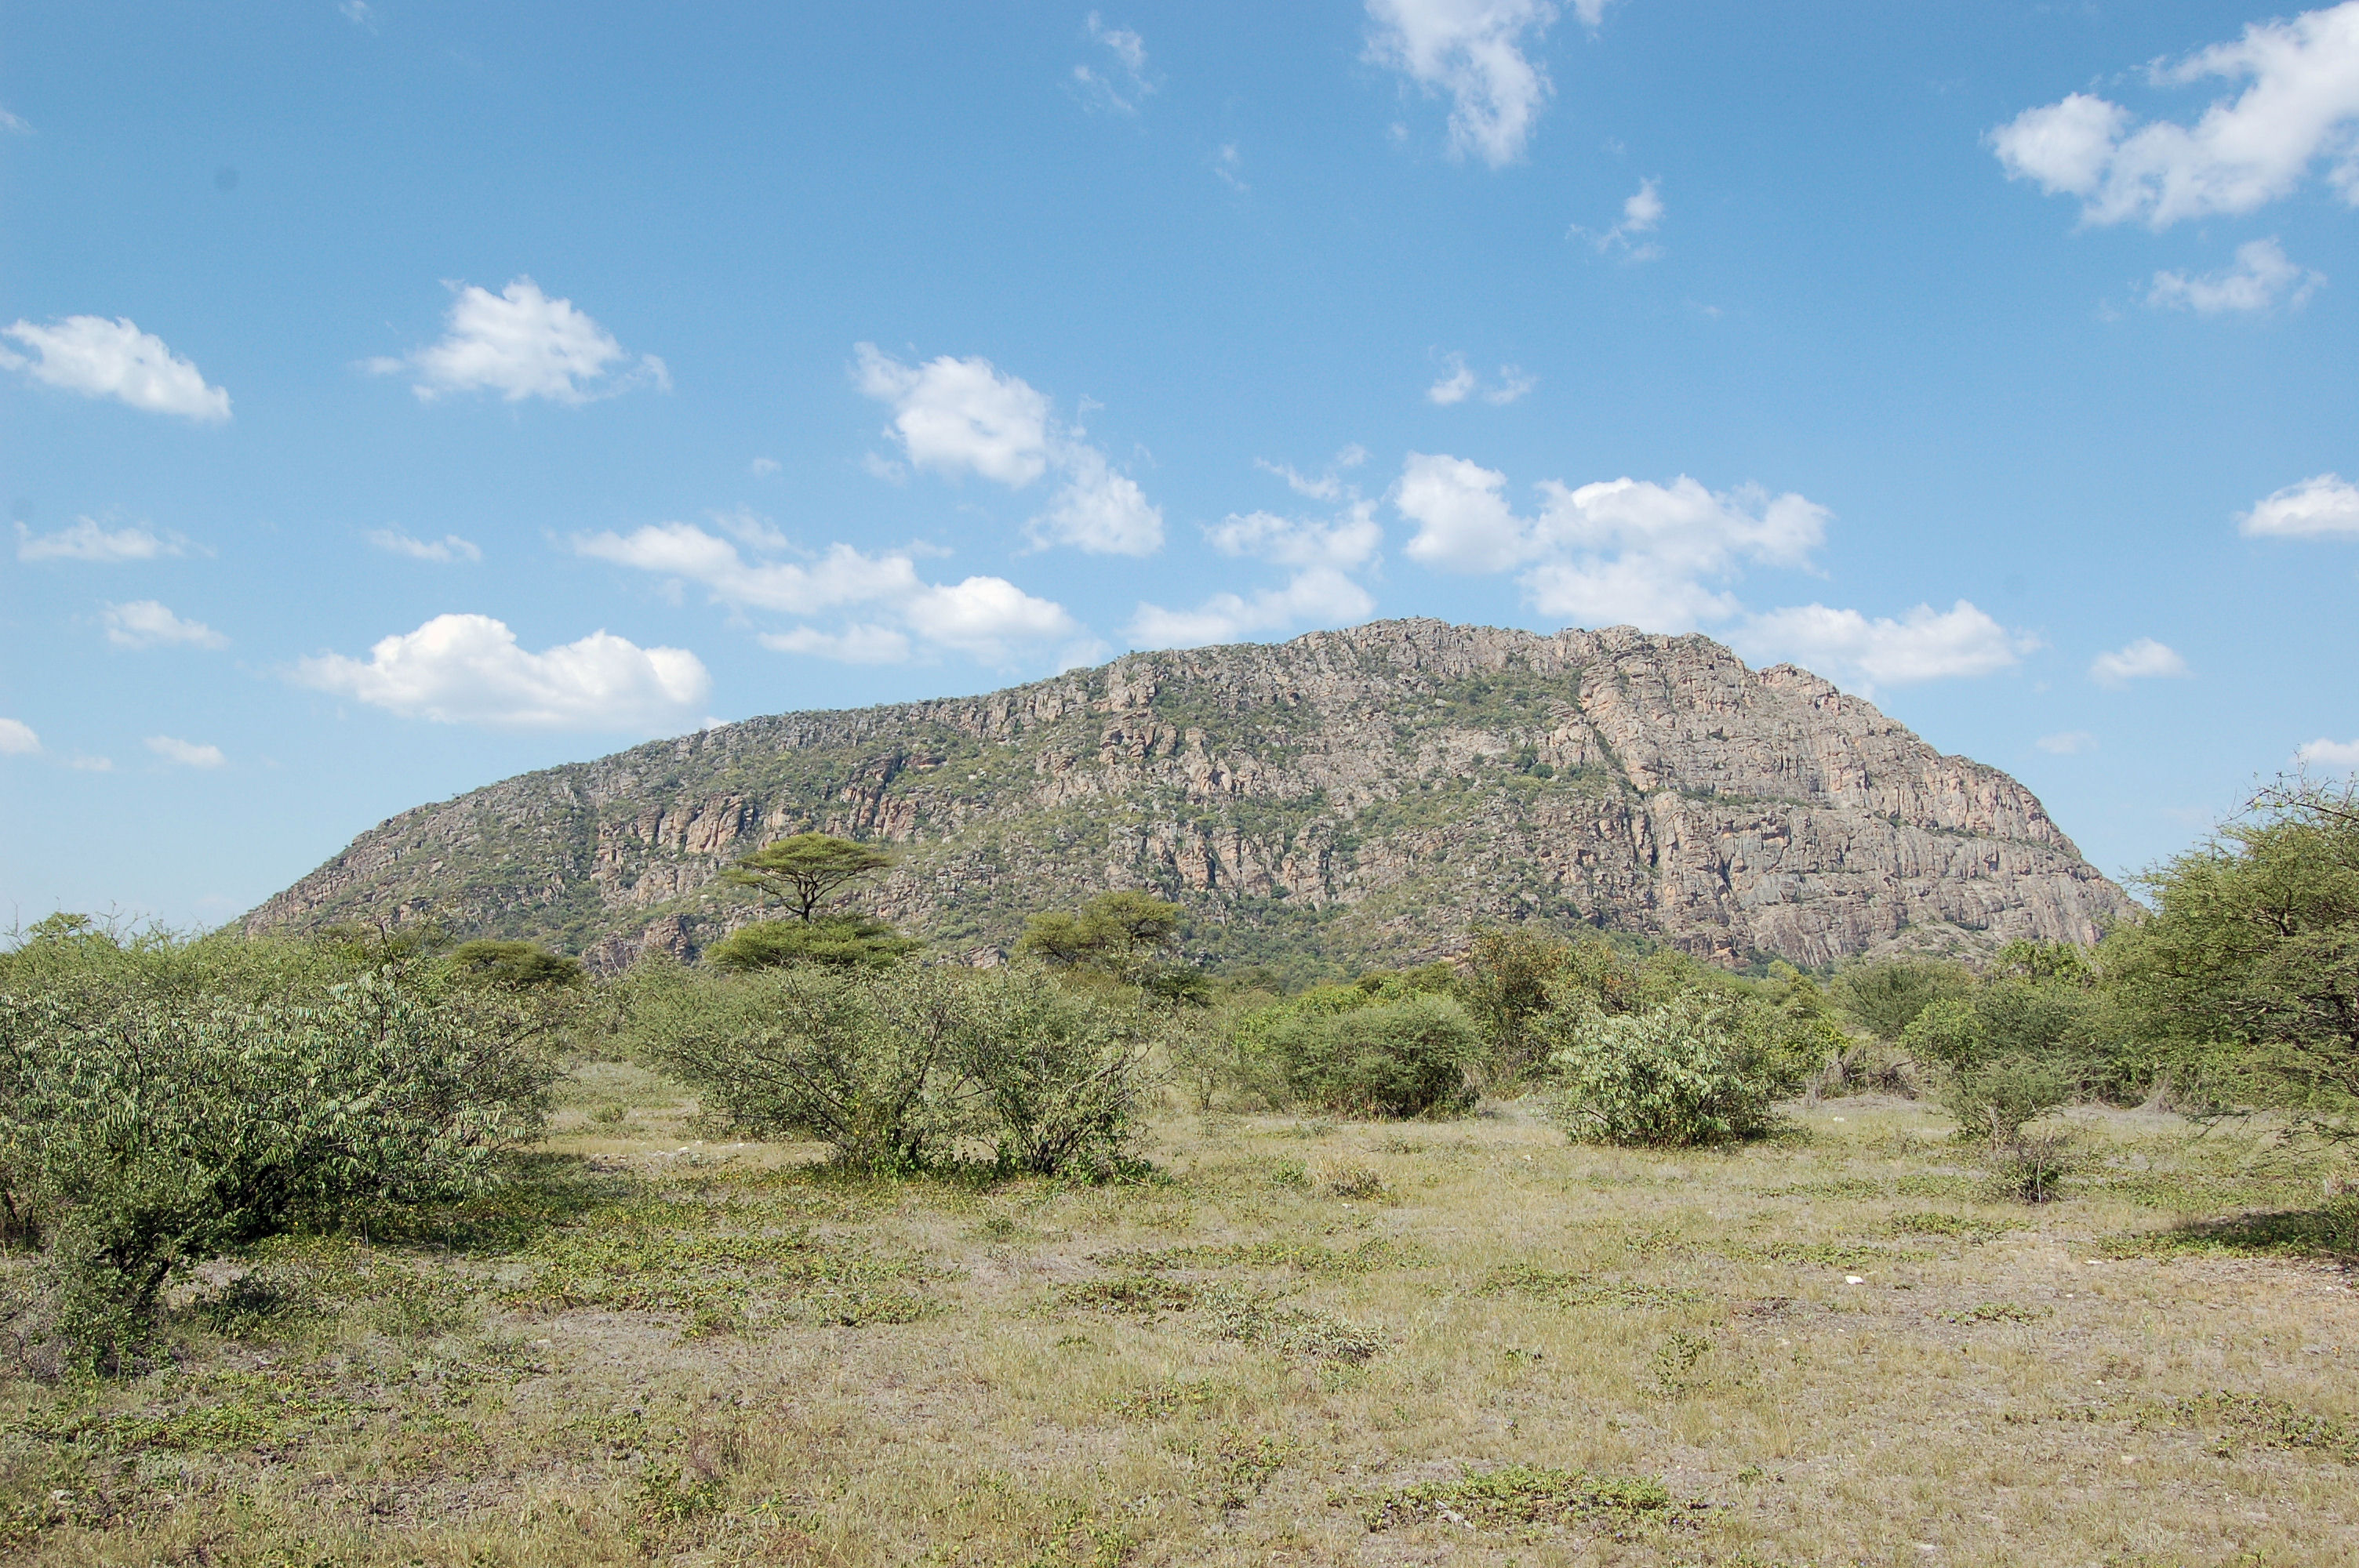 https://upload.wikimedia.org/wikipedia/commons/5/58/Tsodilo_Hills,_Botswana_(2625371308).jpg